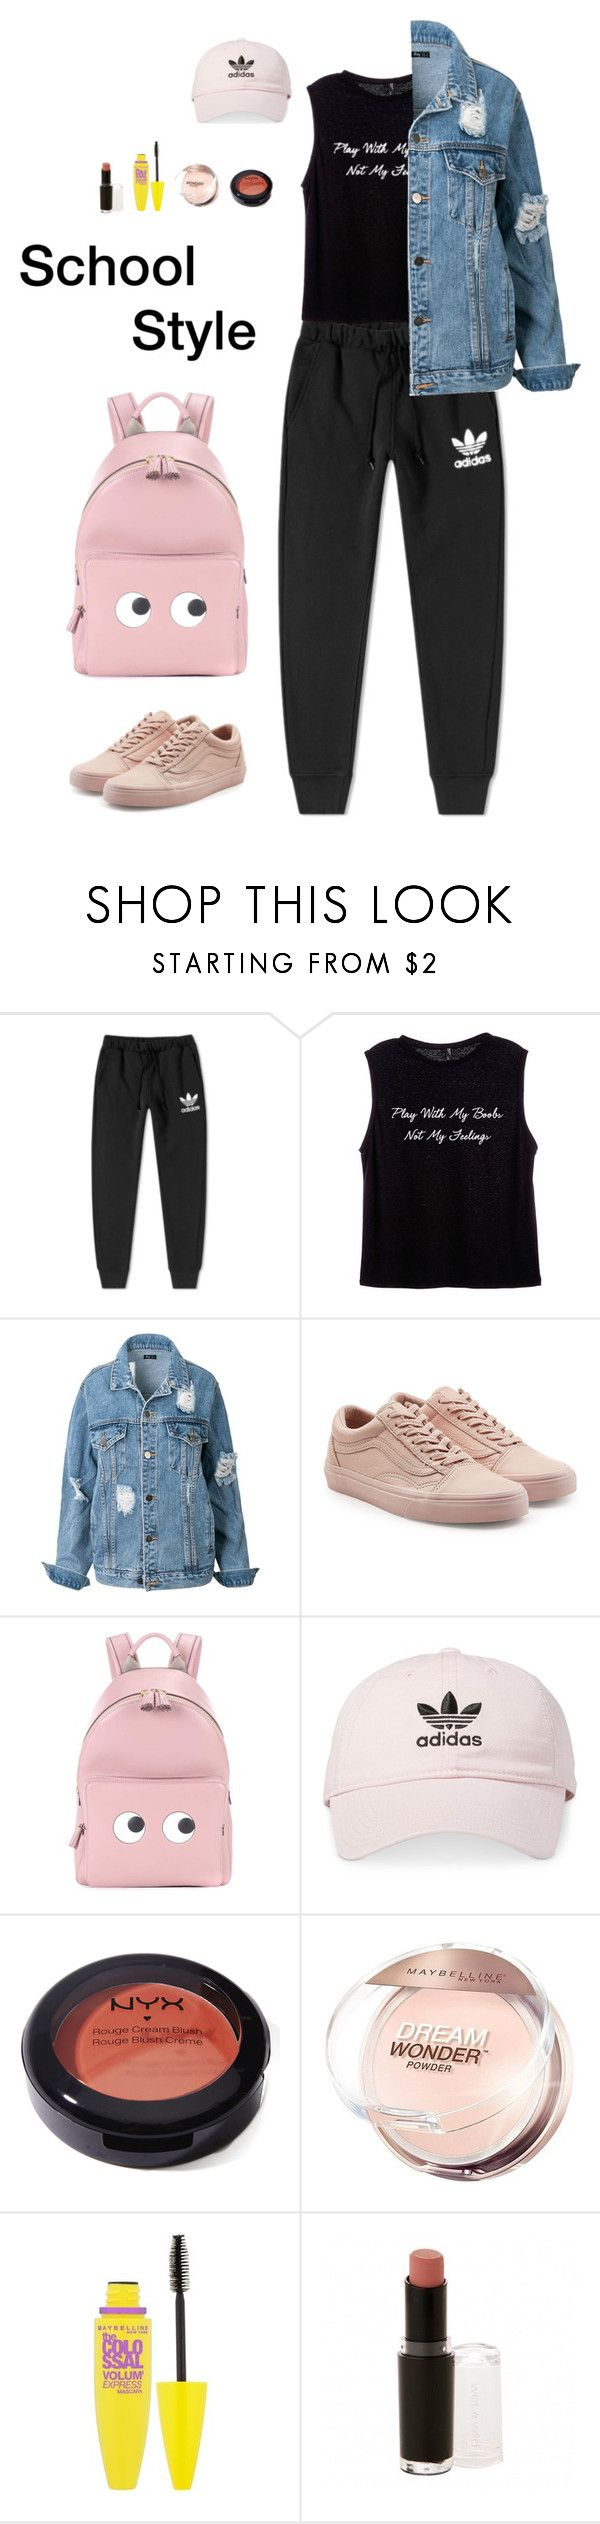 """School Style (4)"" by irisazlou on Polyvore featuring mode, adidas, Vans, Anya Hindmarch, NYX, Maybelline et Wet n Wild"